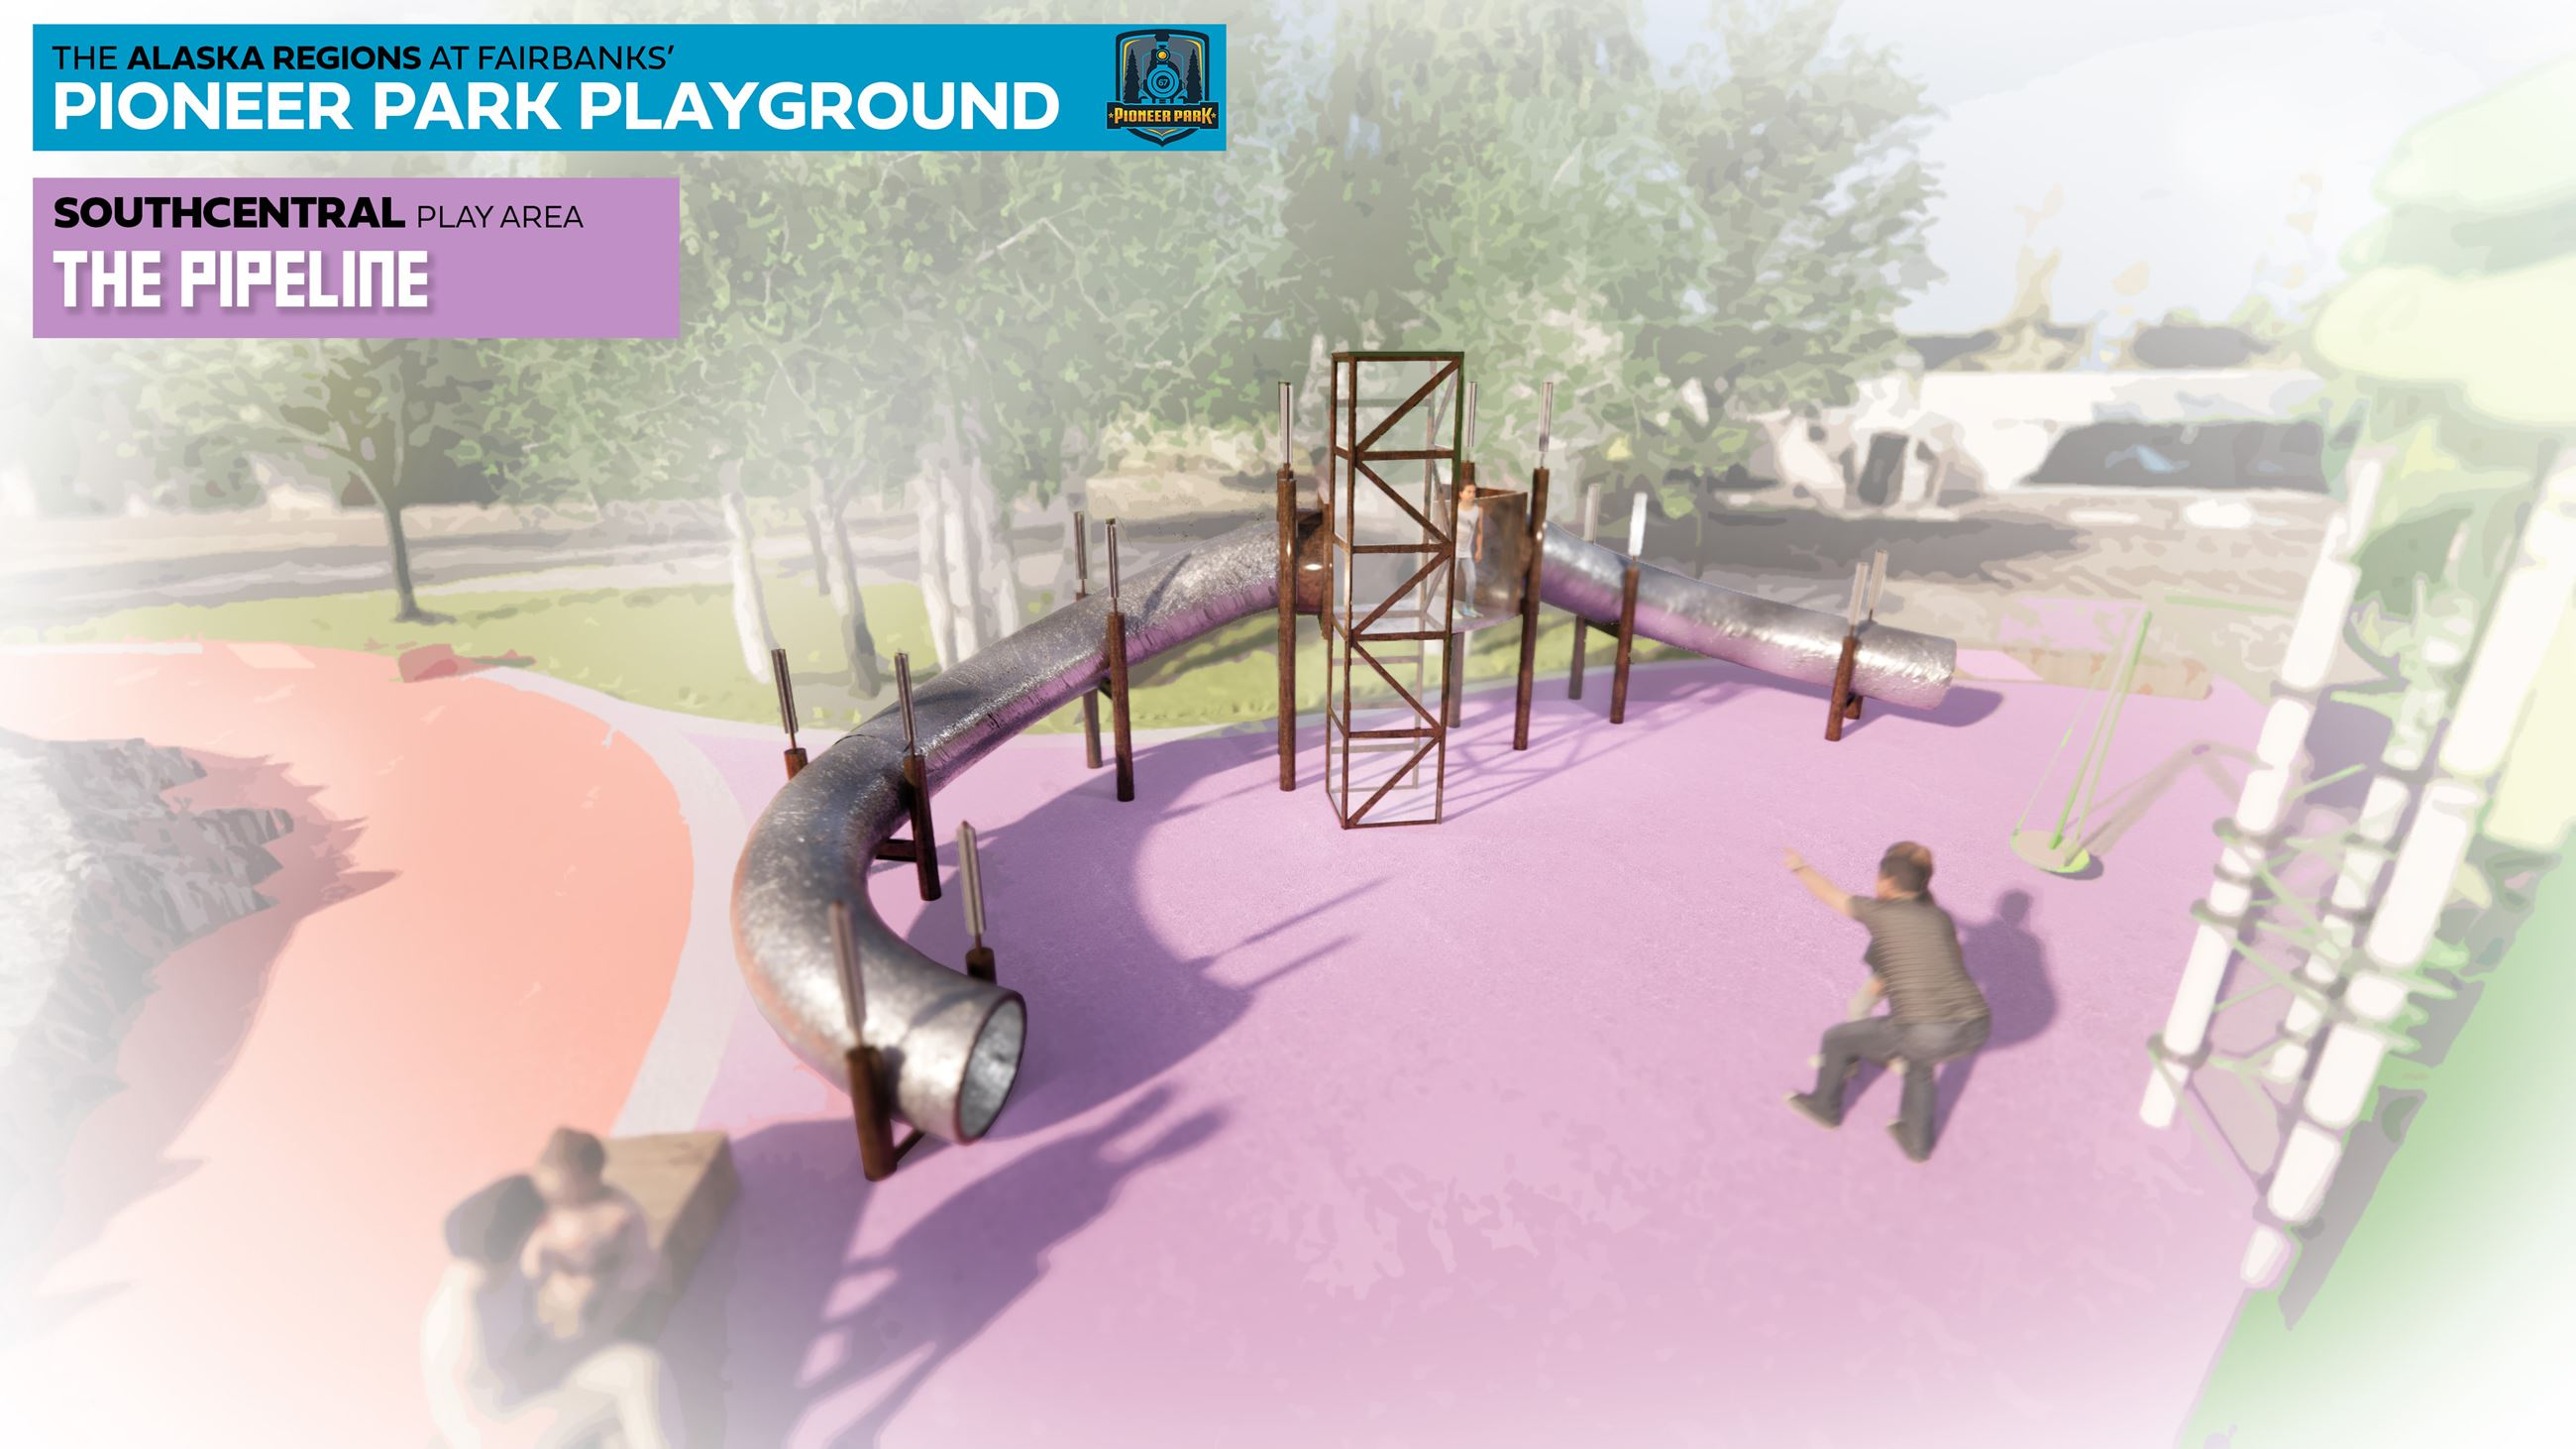 Pioneer Park Playground_EQUIP Pipeline_TB